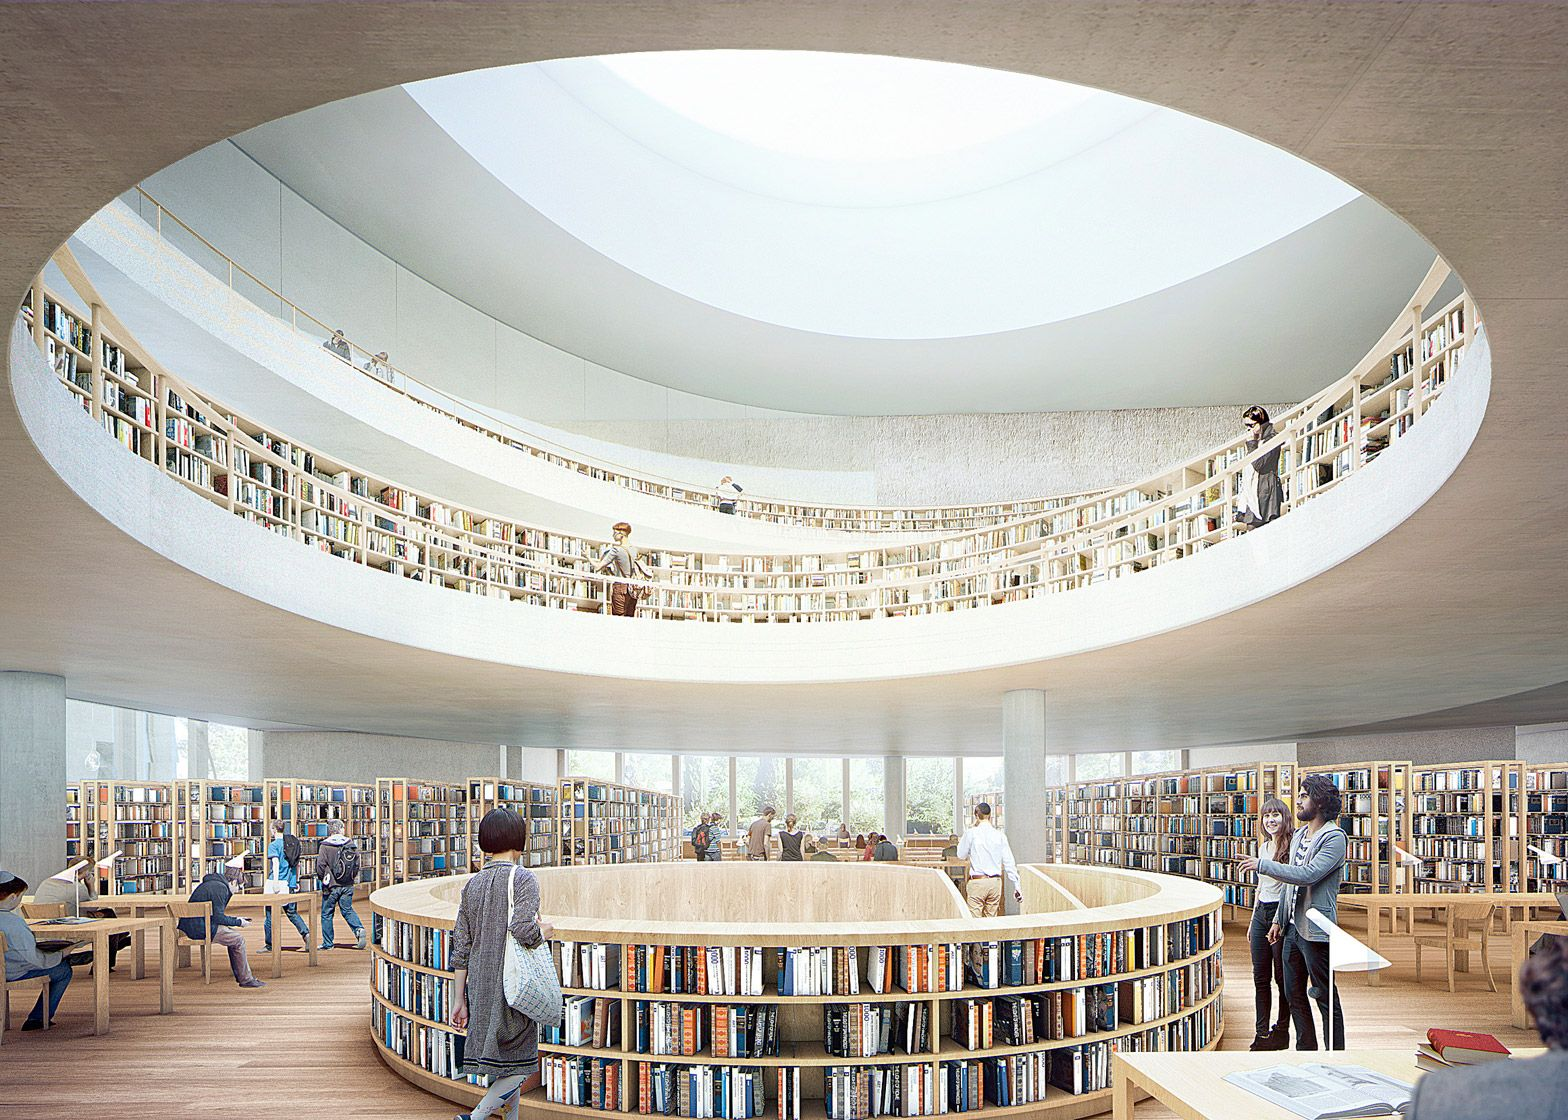 Herzog & de Meuron has released further imagery of its National library of Israel, a stone-clad building with a scooped roofline due to be finished in 2020.